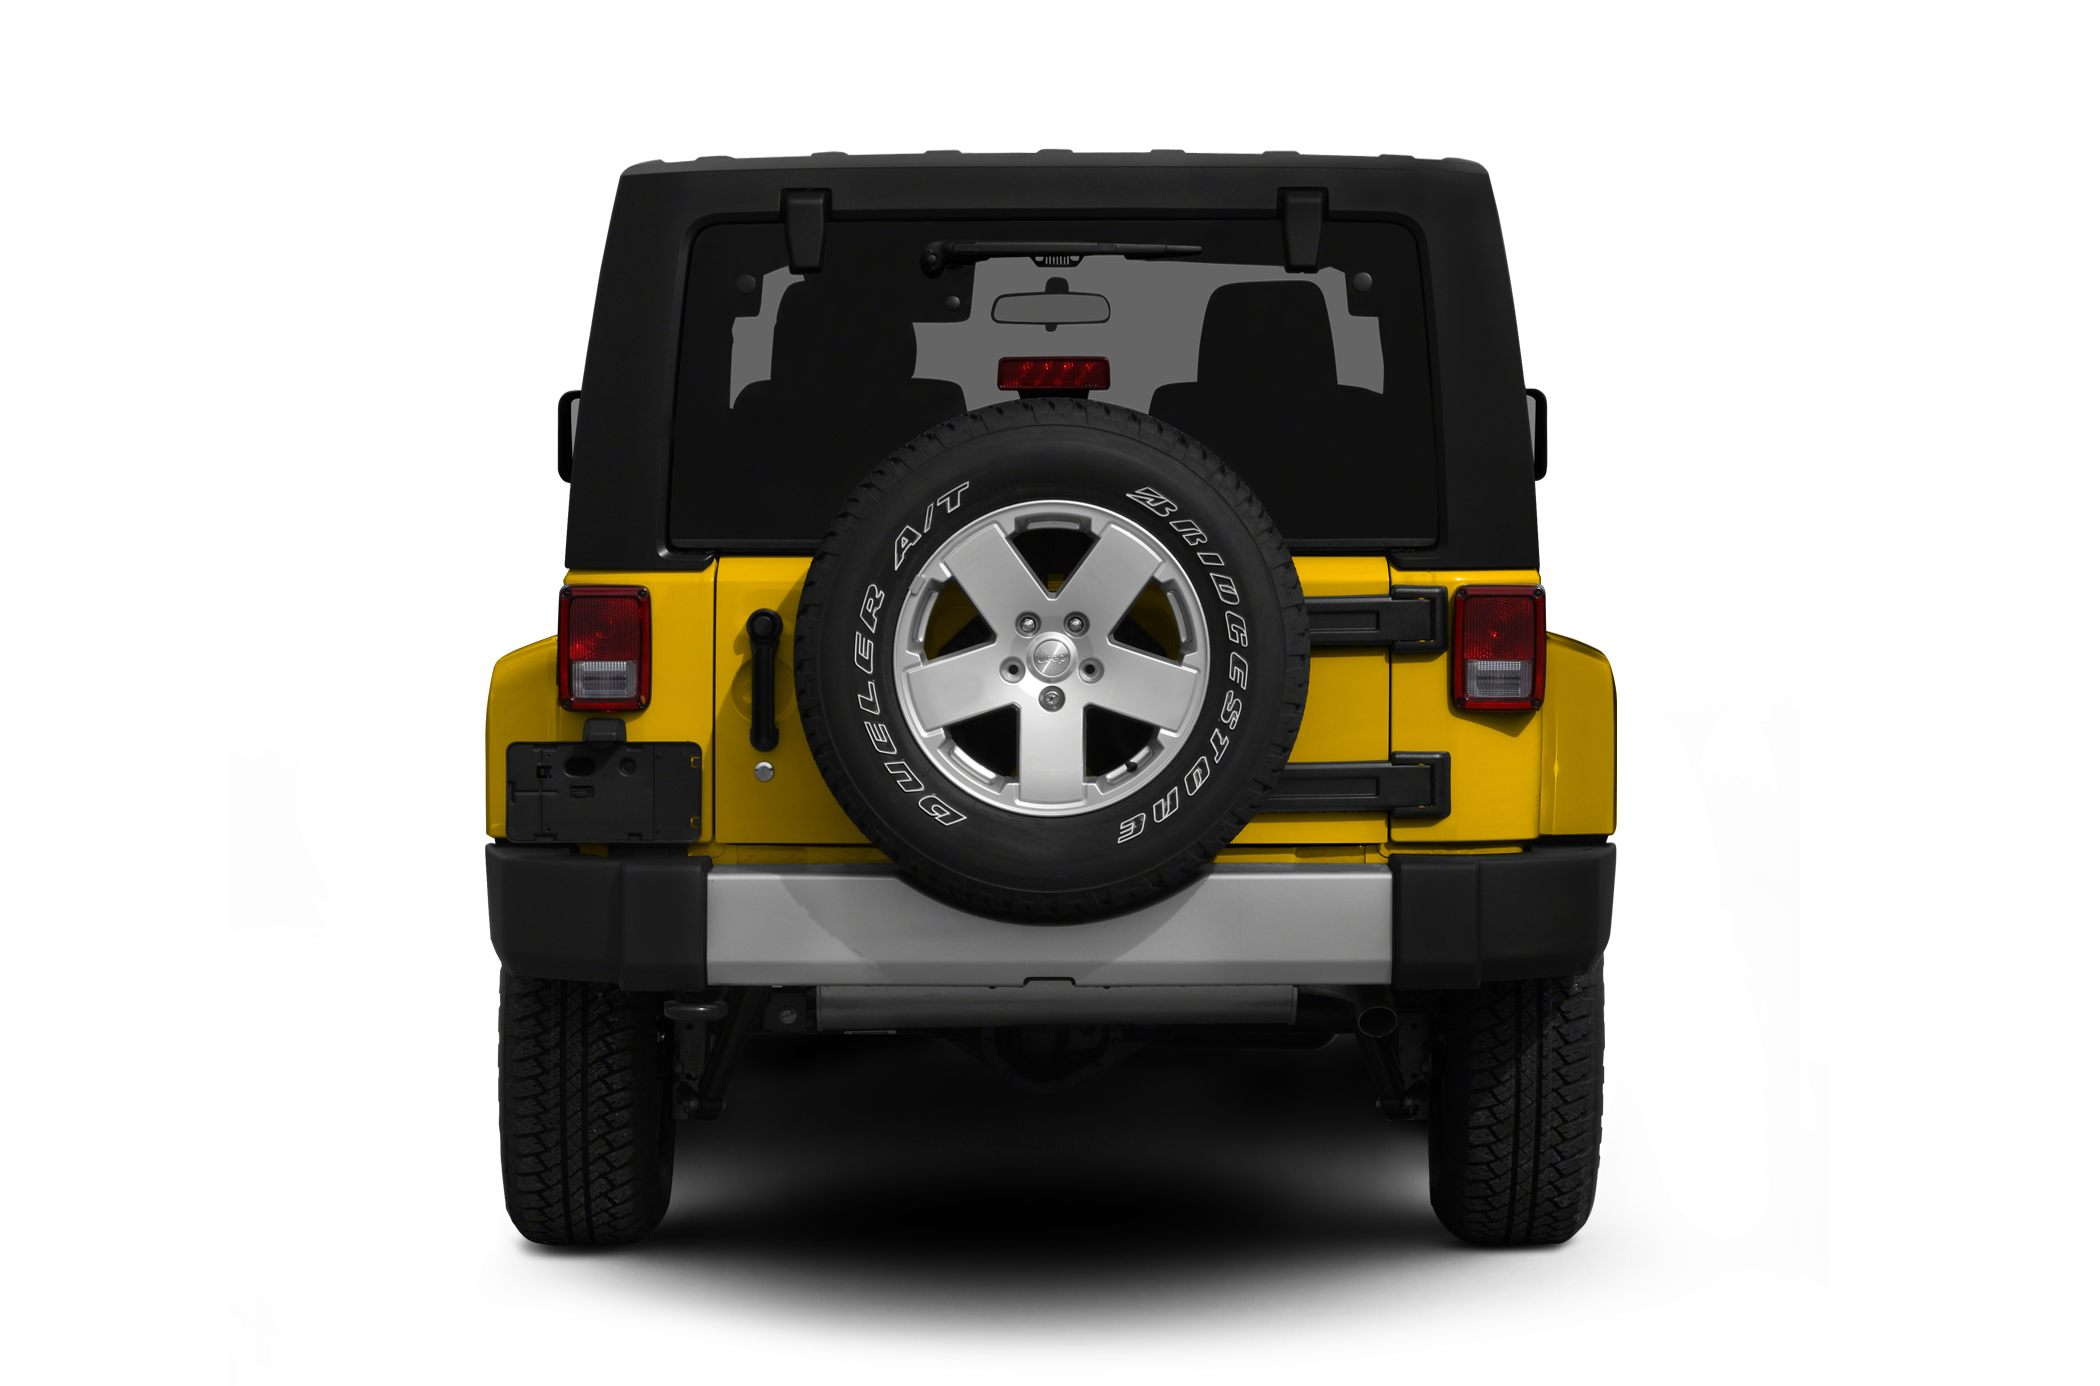 Used 2011 Jeep Wrangler Unlimited Sport Inventory Vehicle Details